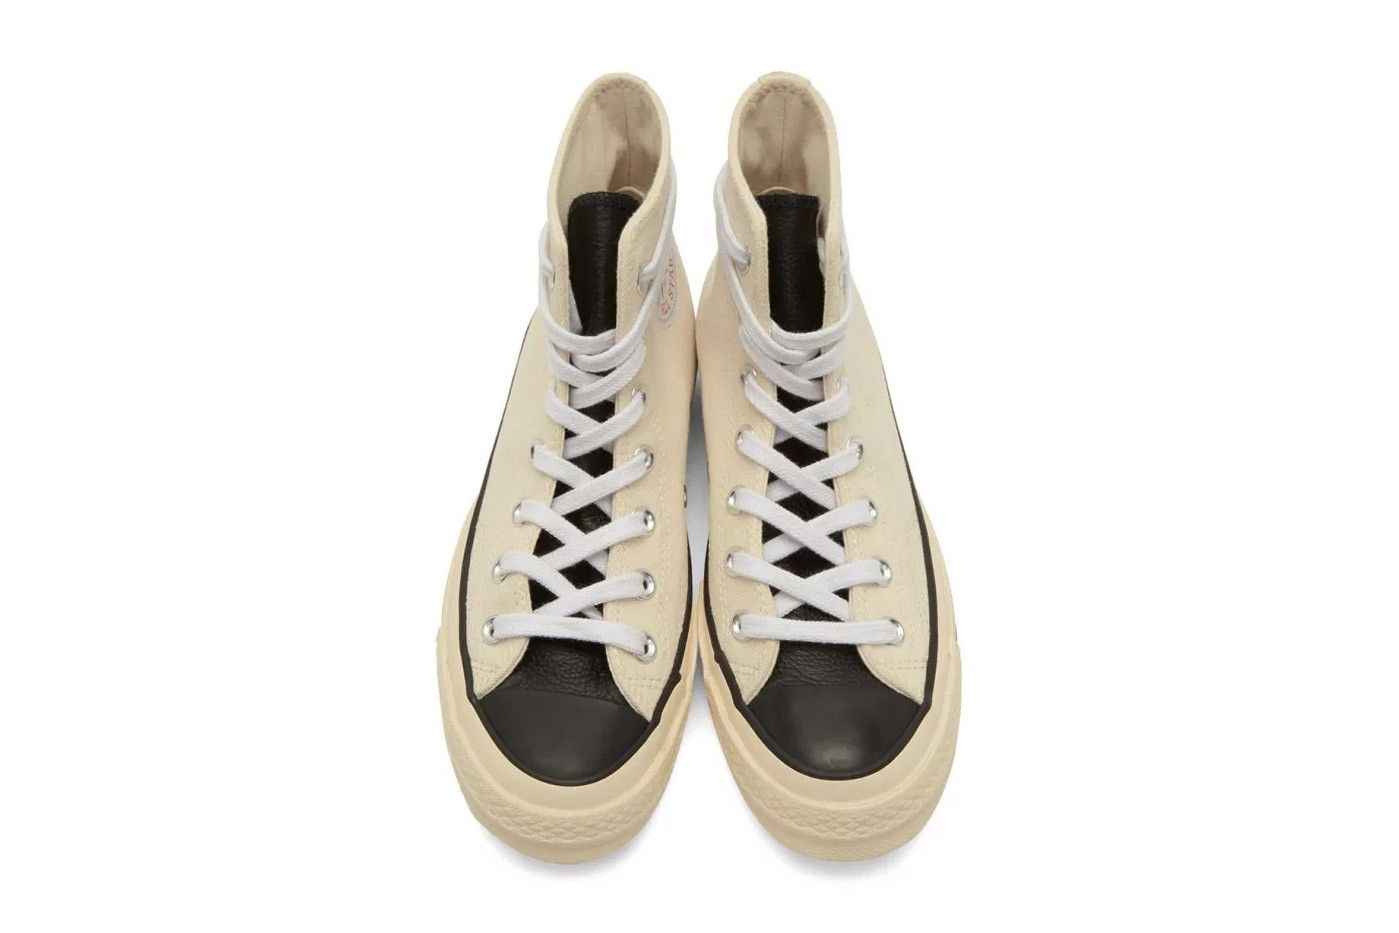 8c4f9076a1ab Fear Of God ESSENTIALS x Converse Chuck 70 Release Details Sneakers  Trainers Kicks Shoes Footwear Cop